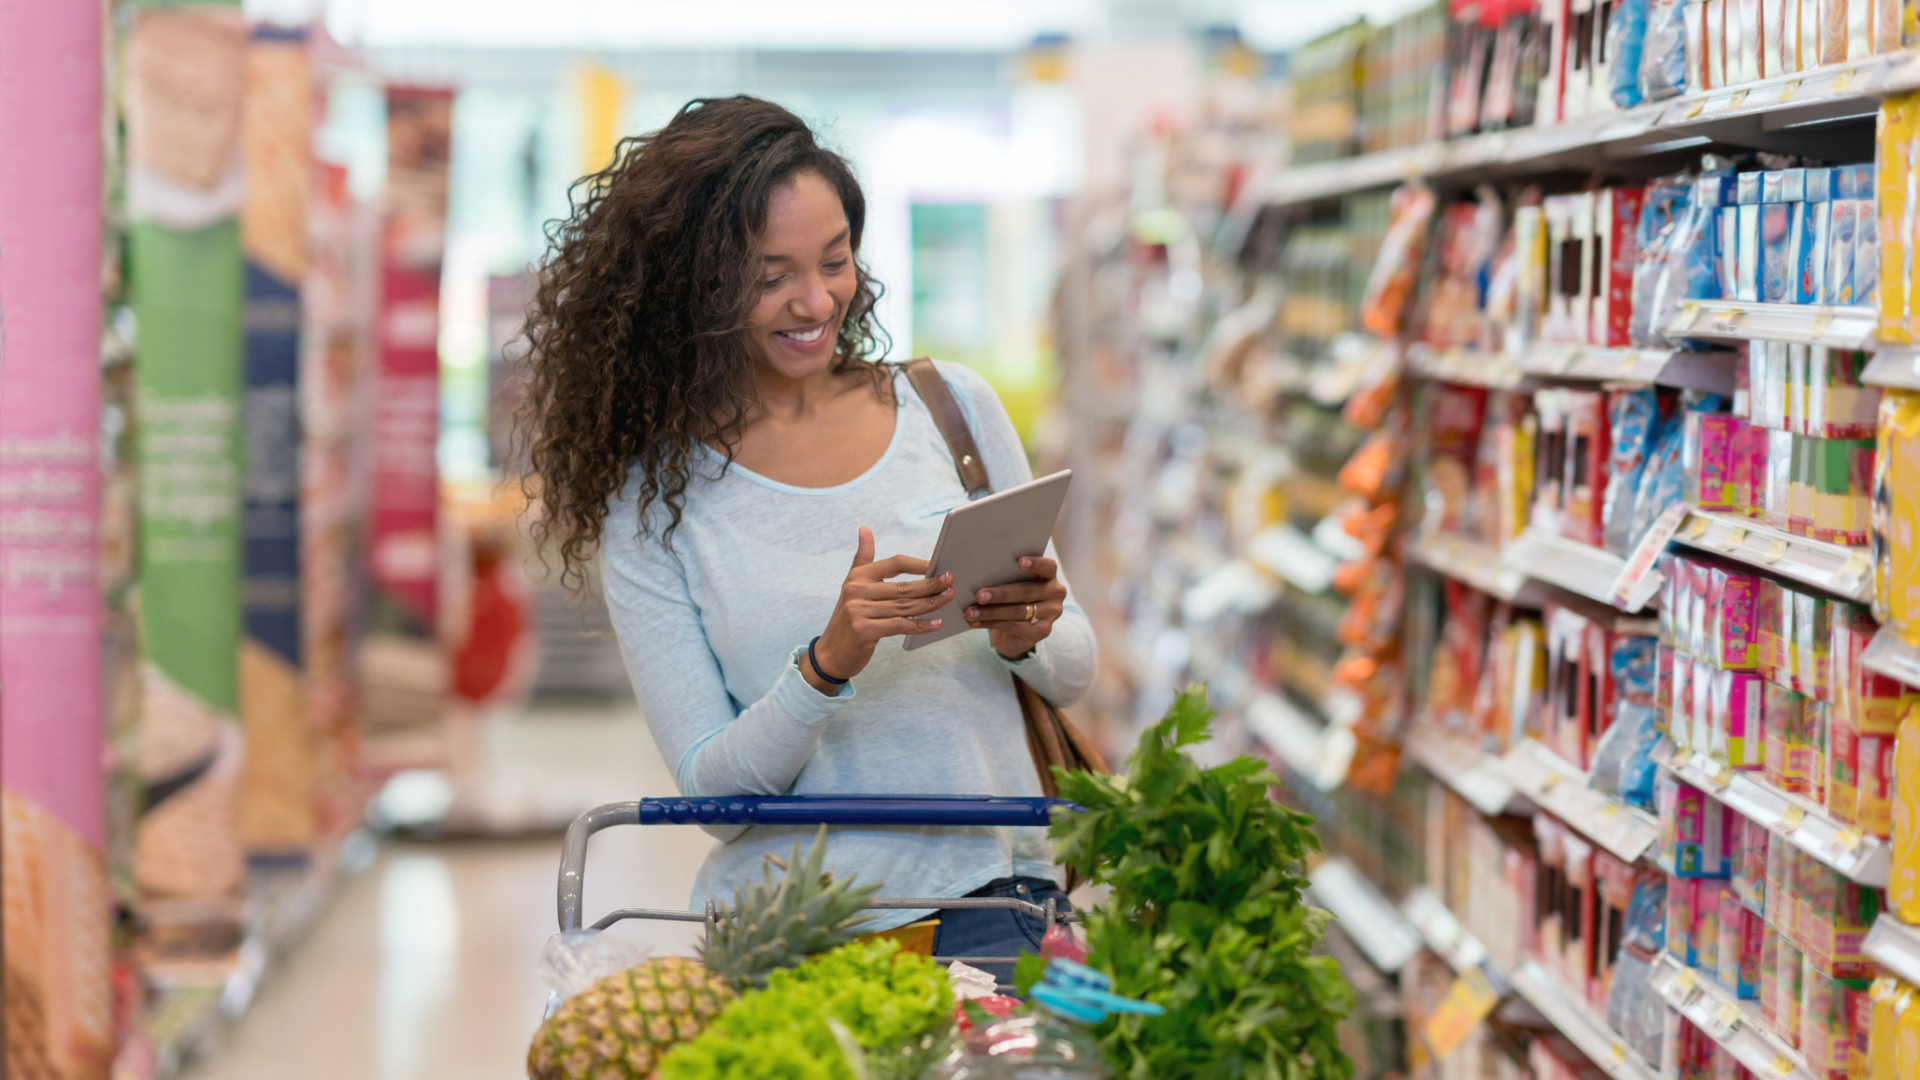 African american woman grocery shopping and looking at a shopping list on a digital tablet.